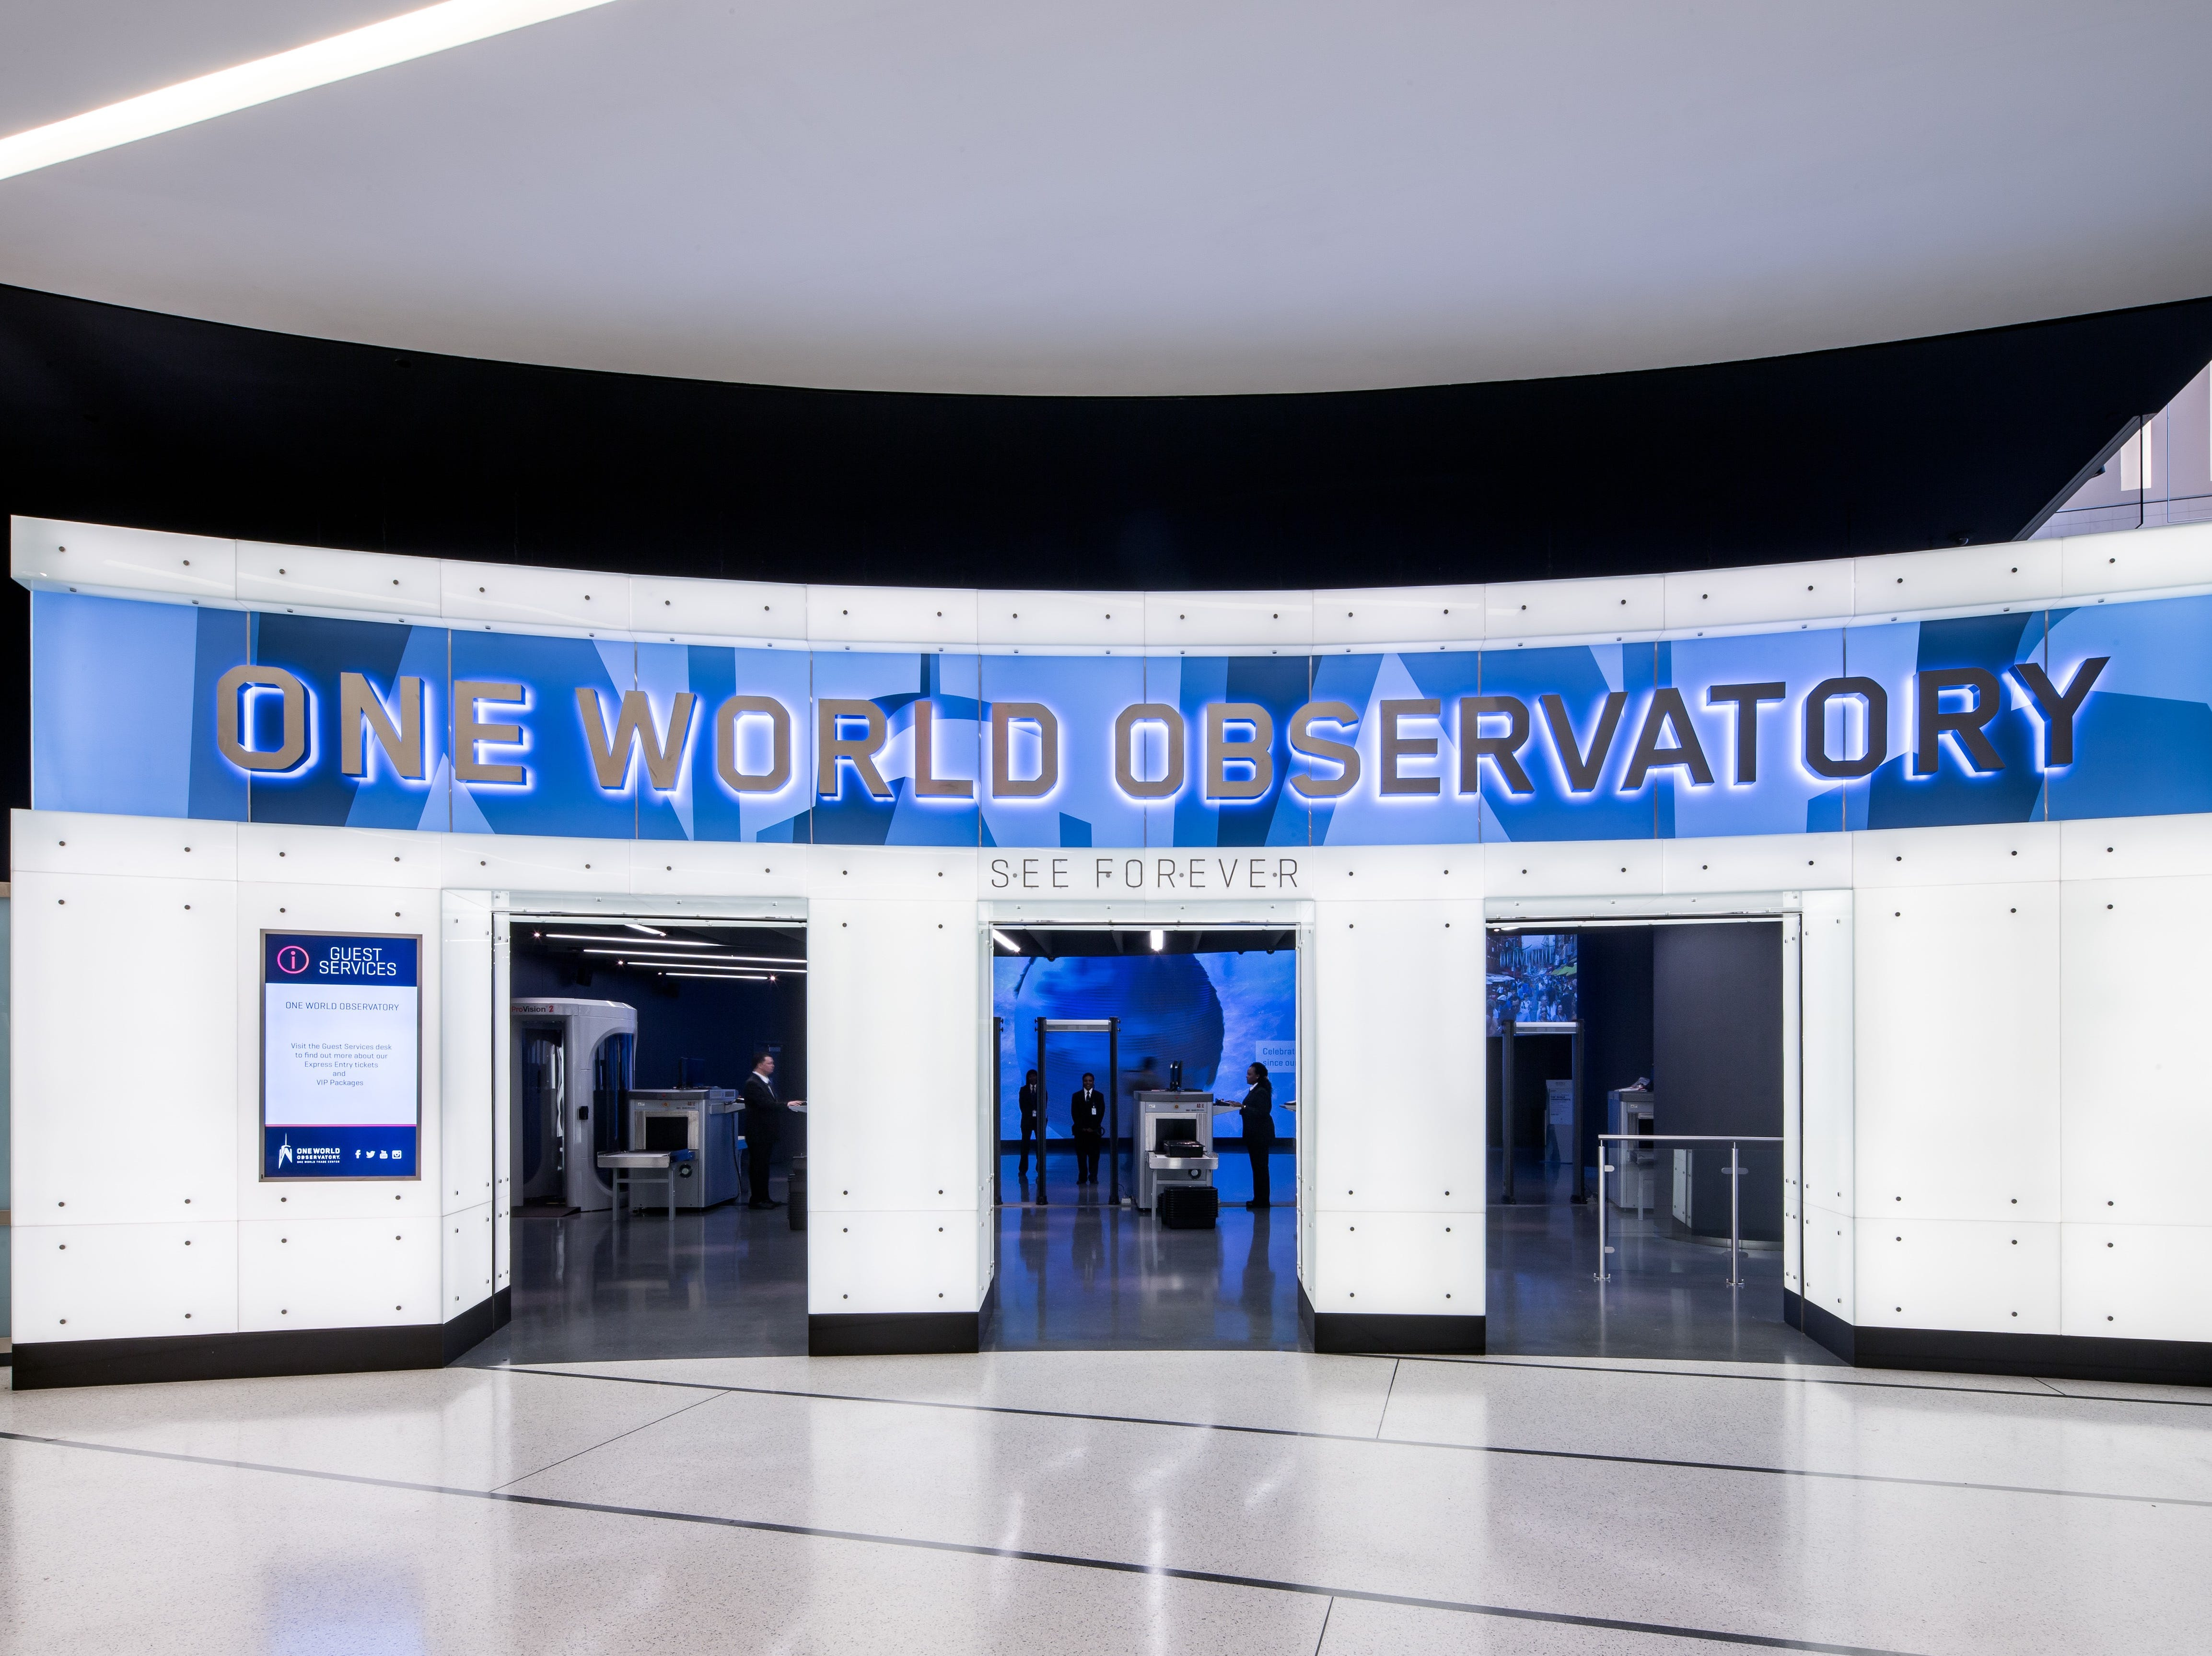 Here's where you enter to get to One World Observatory.